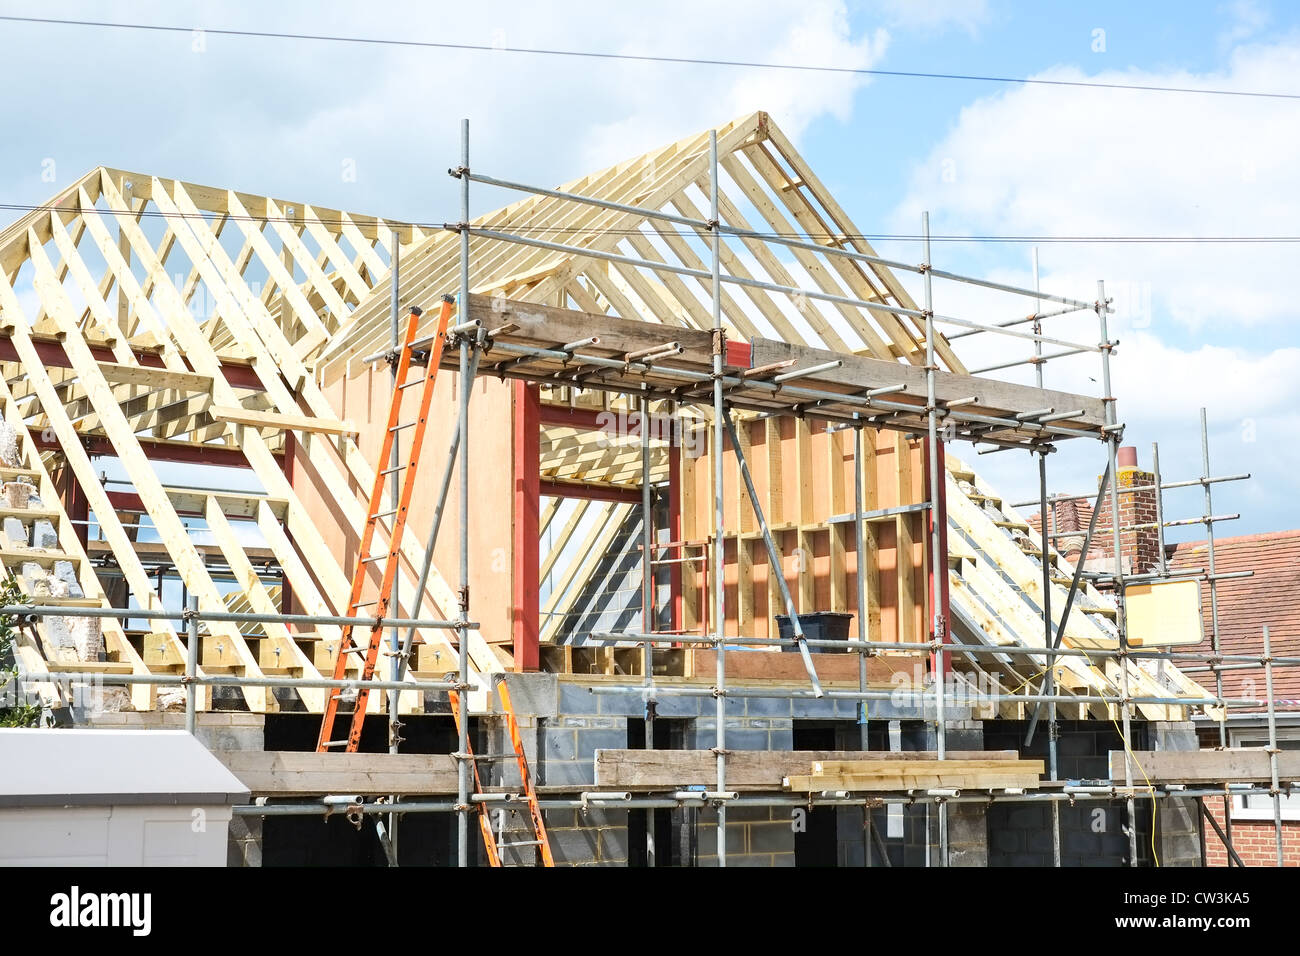 Building a dormer on a house - New House Under Construction With A Large Dormer Roof